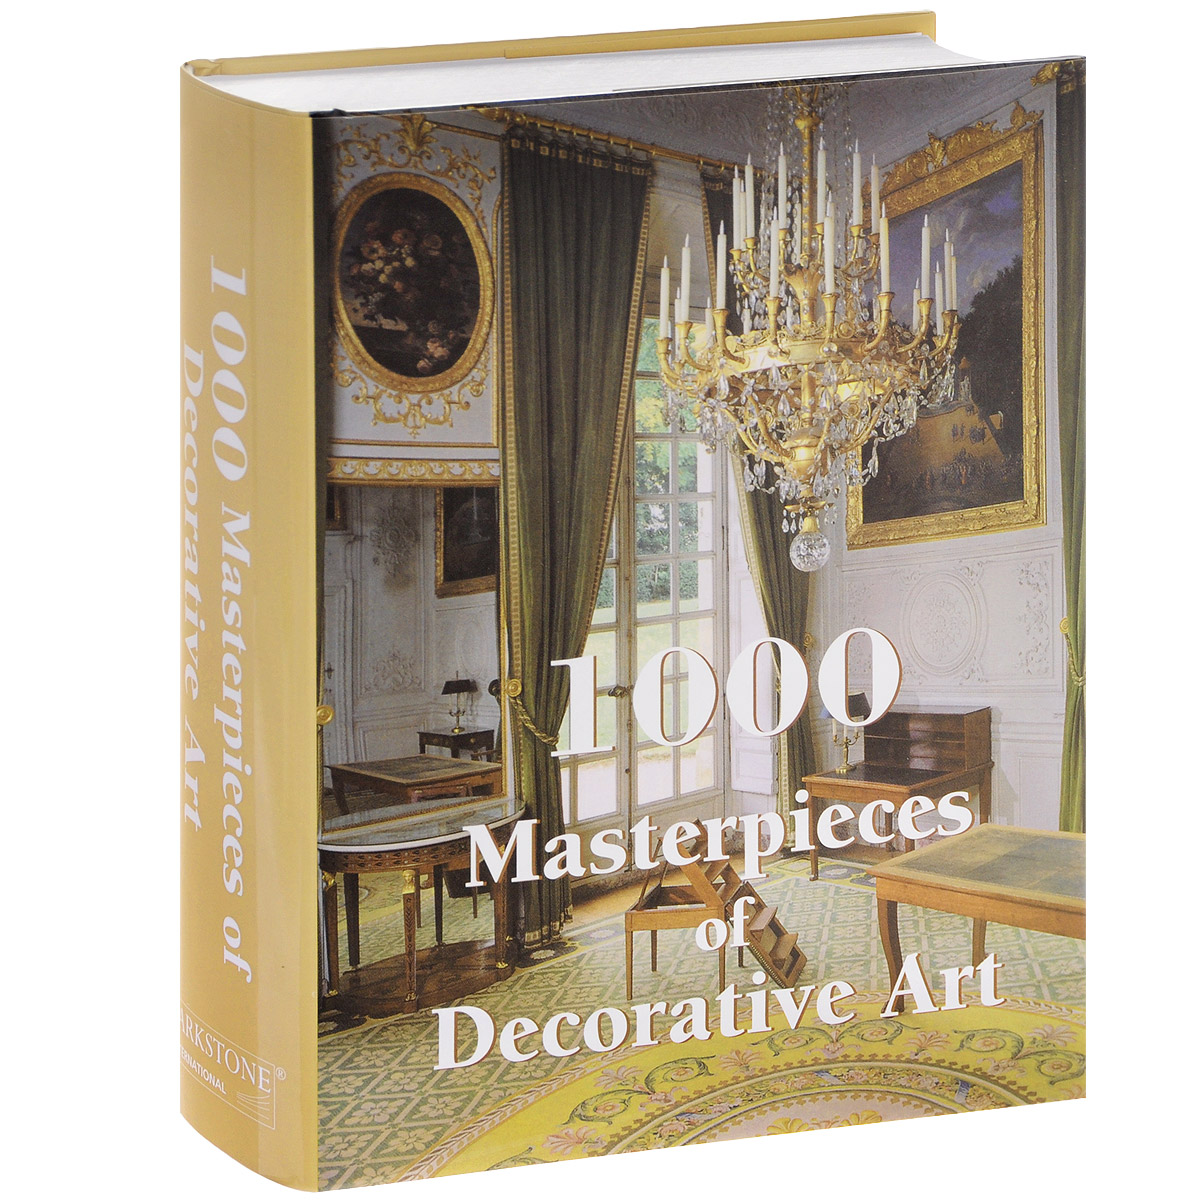 1000 Masterpieces of Decorative Art the art of adding and the art of taking away – selections from john updike s manuscripts